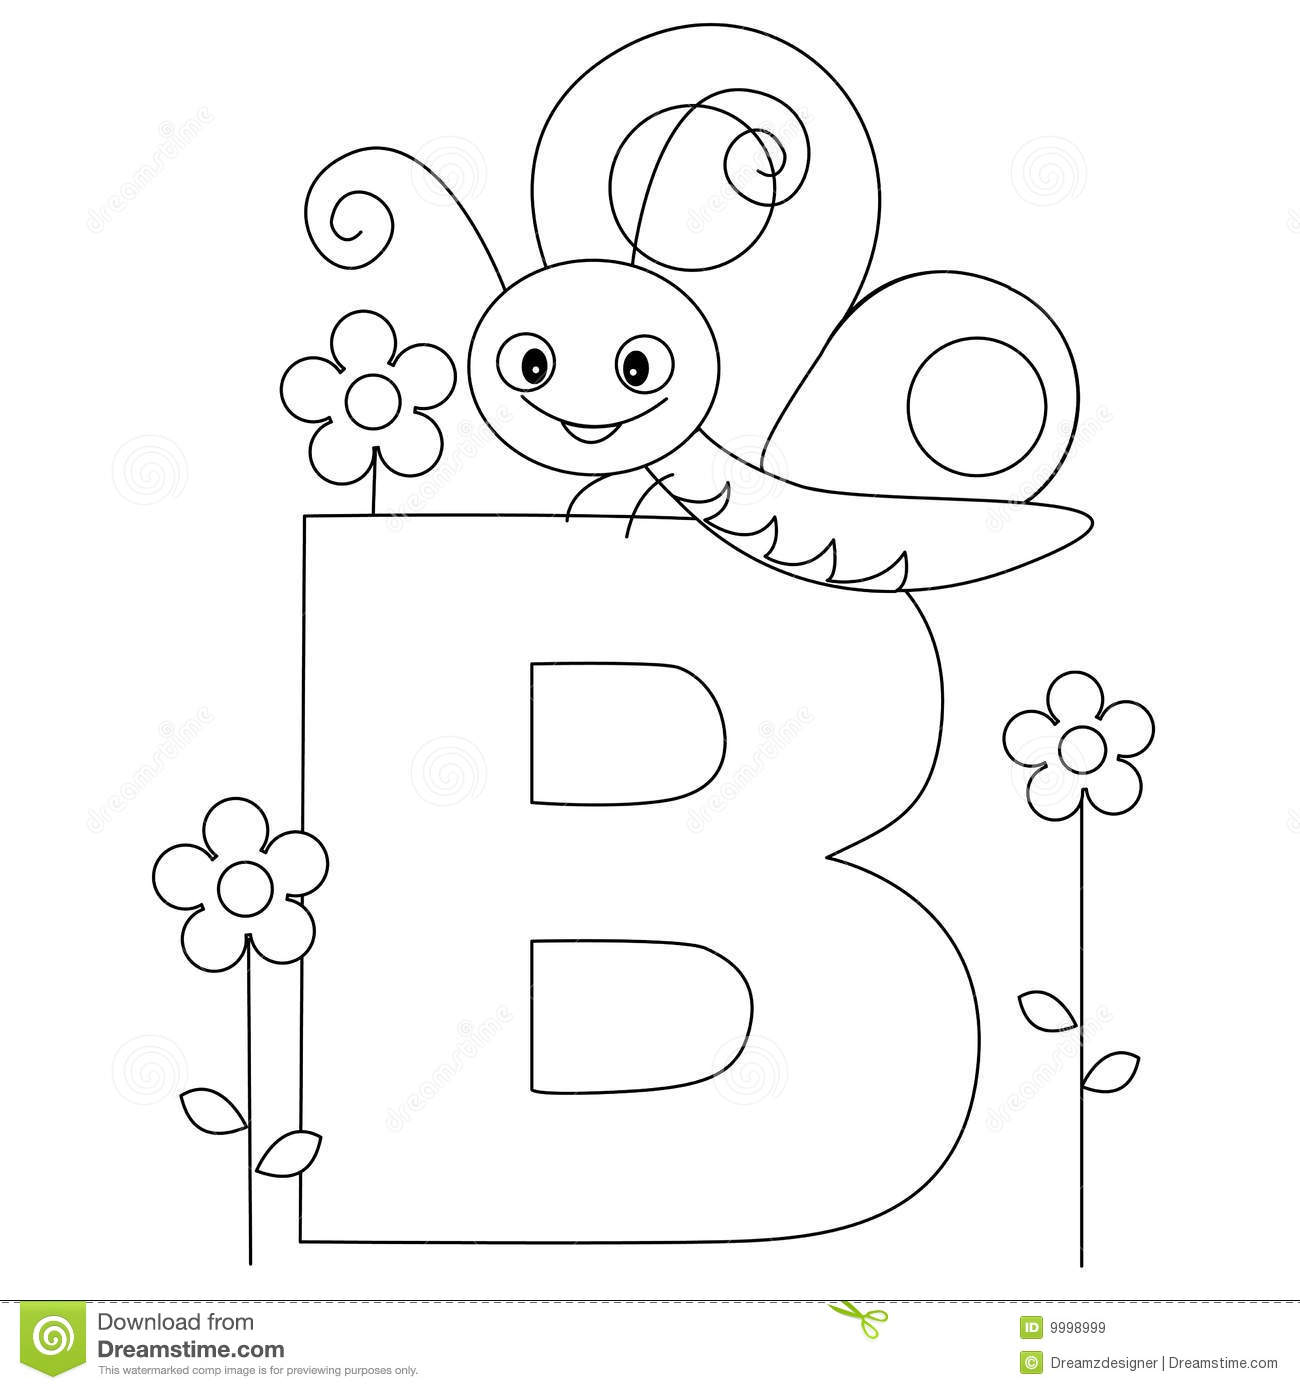 Animal Alphabet B Coloring Page Royalty Free Stock Images